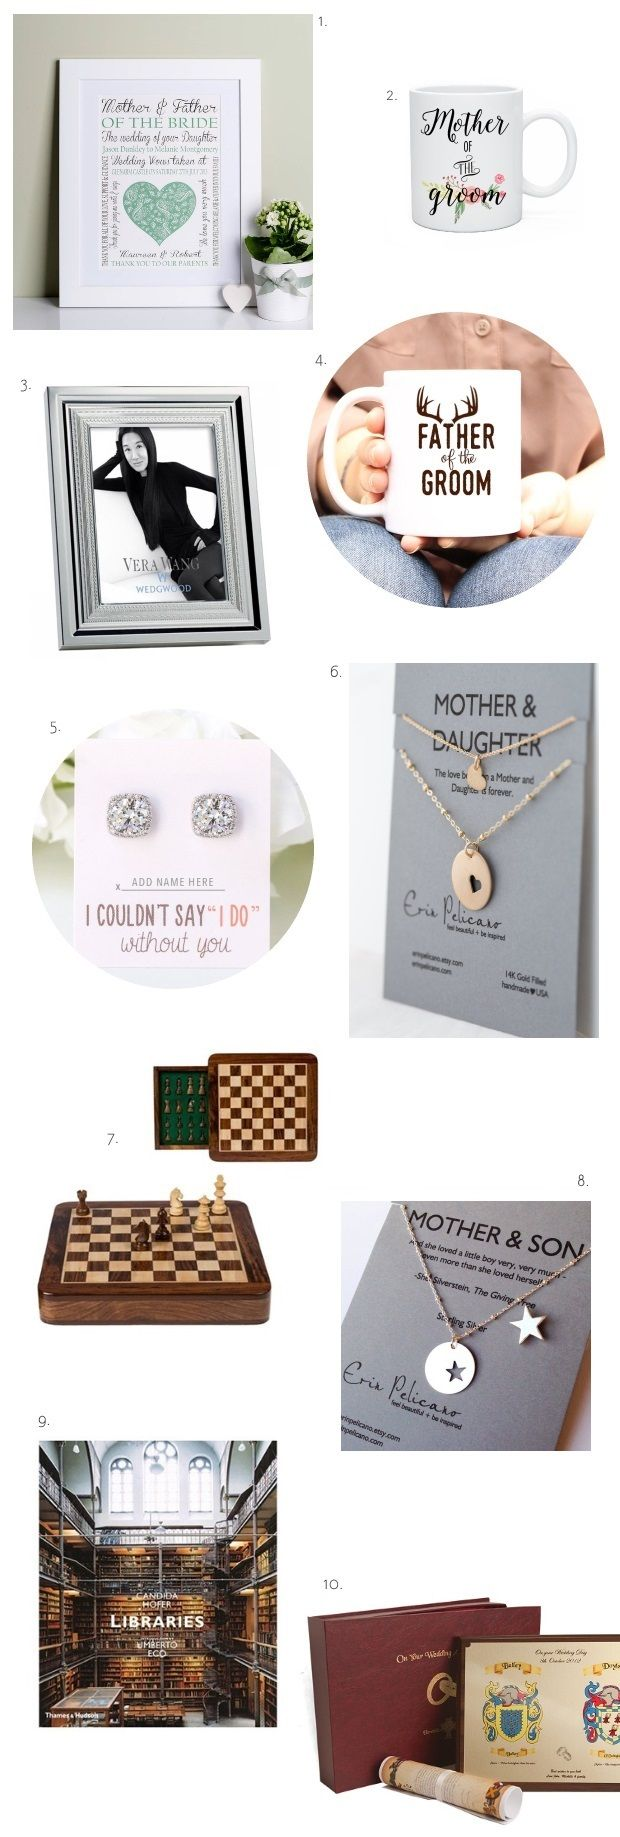 Wedding Gift Ideas Last Minute Lading For